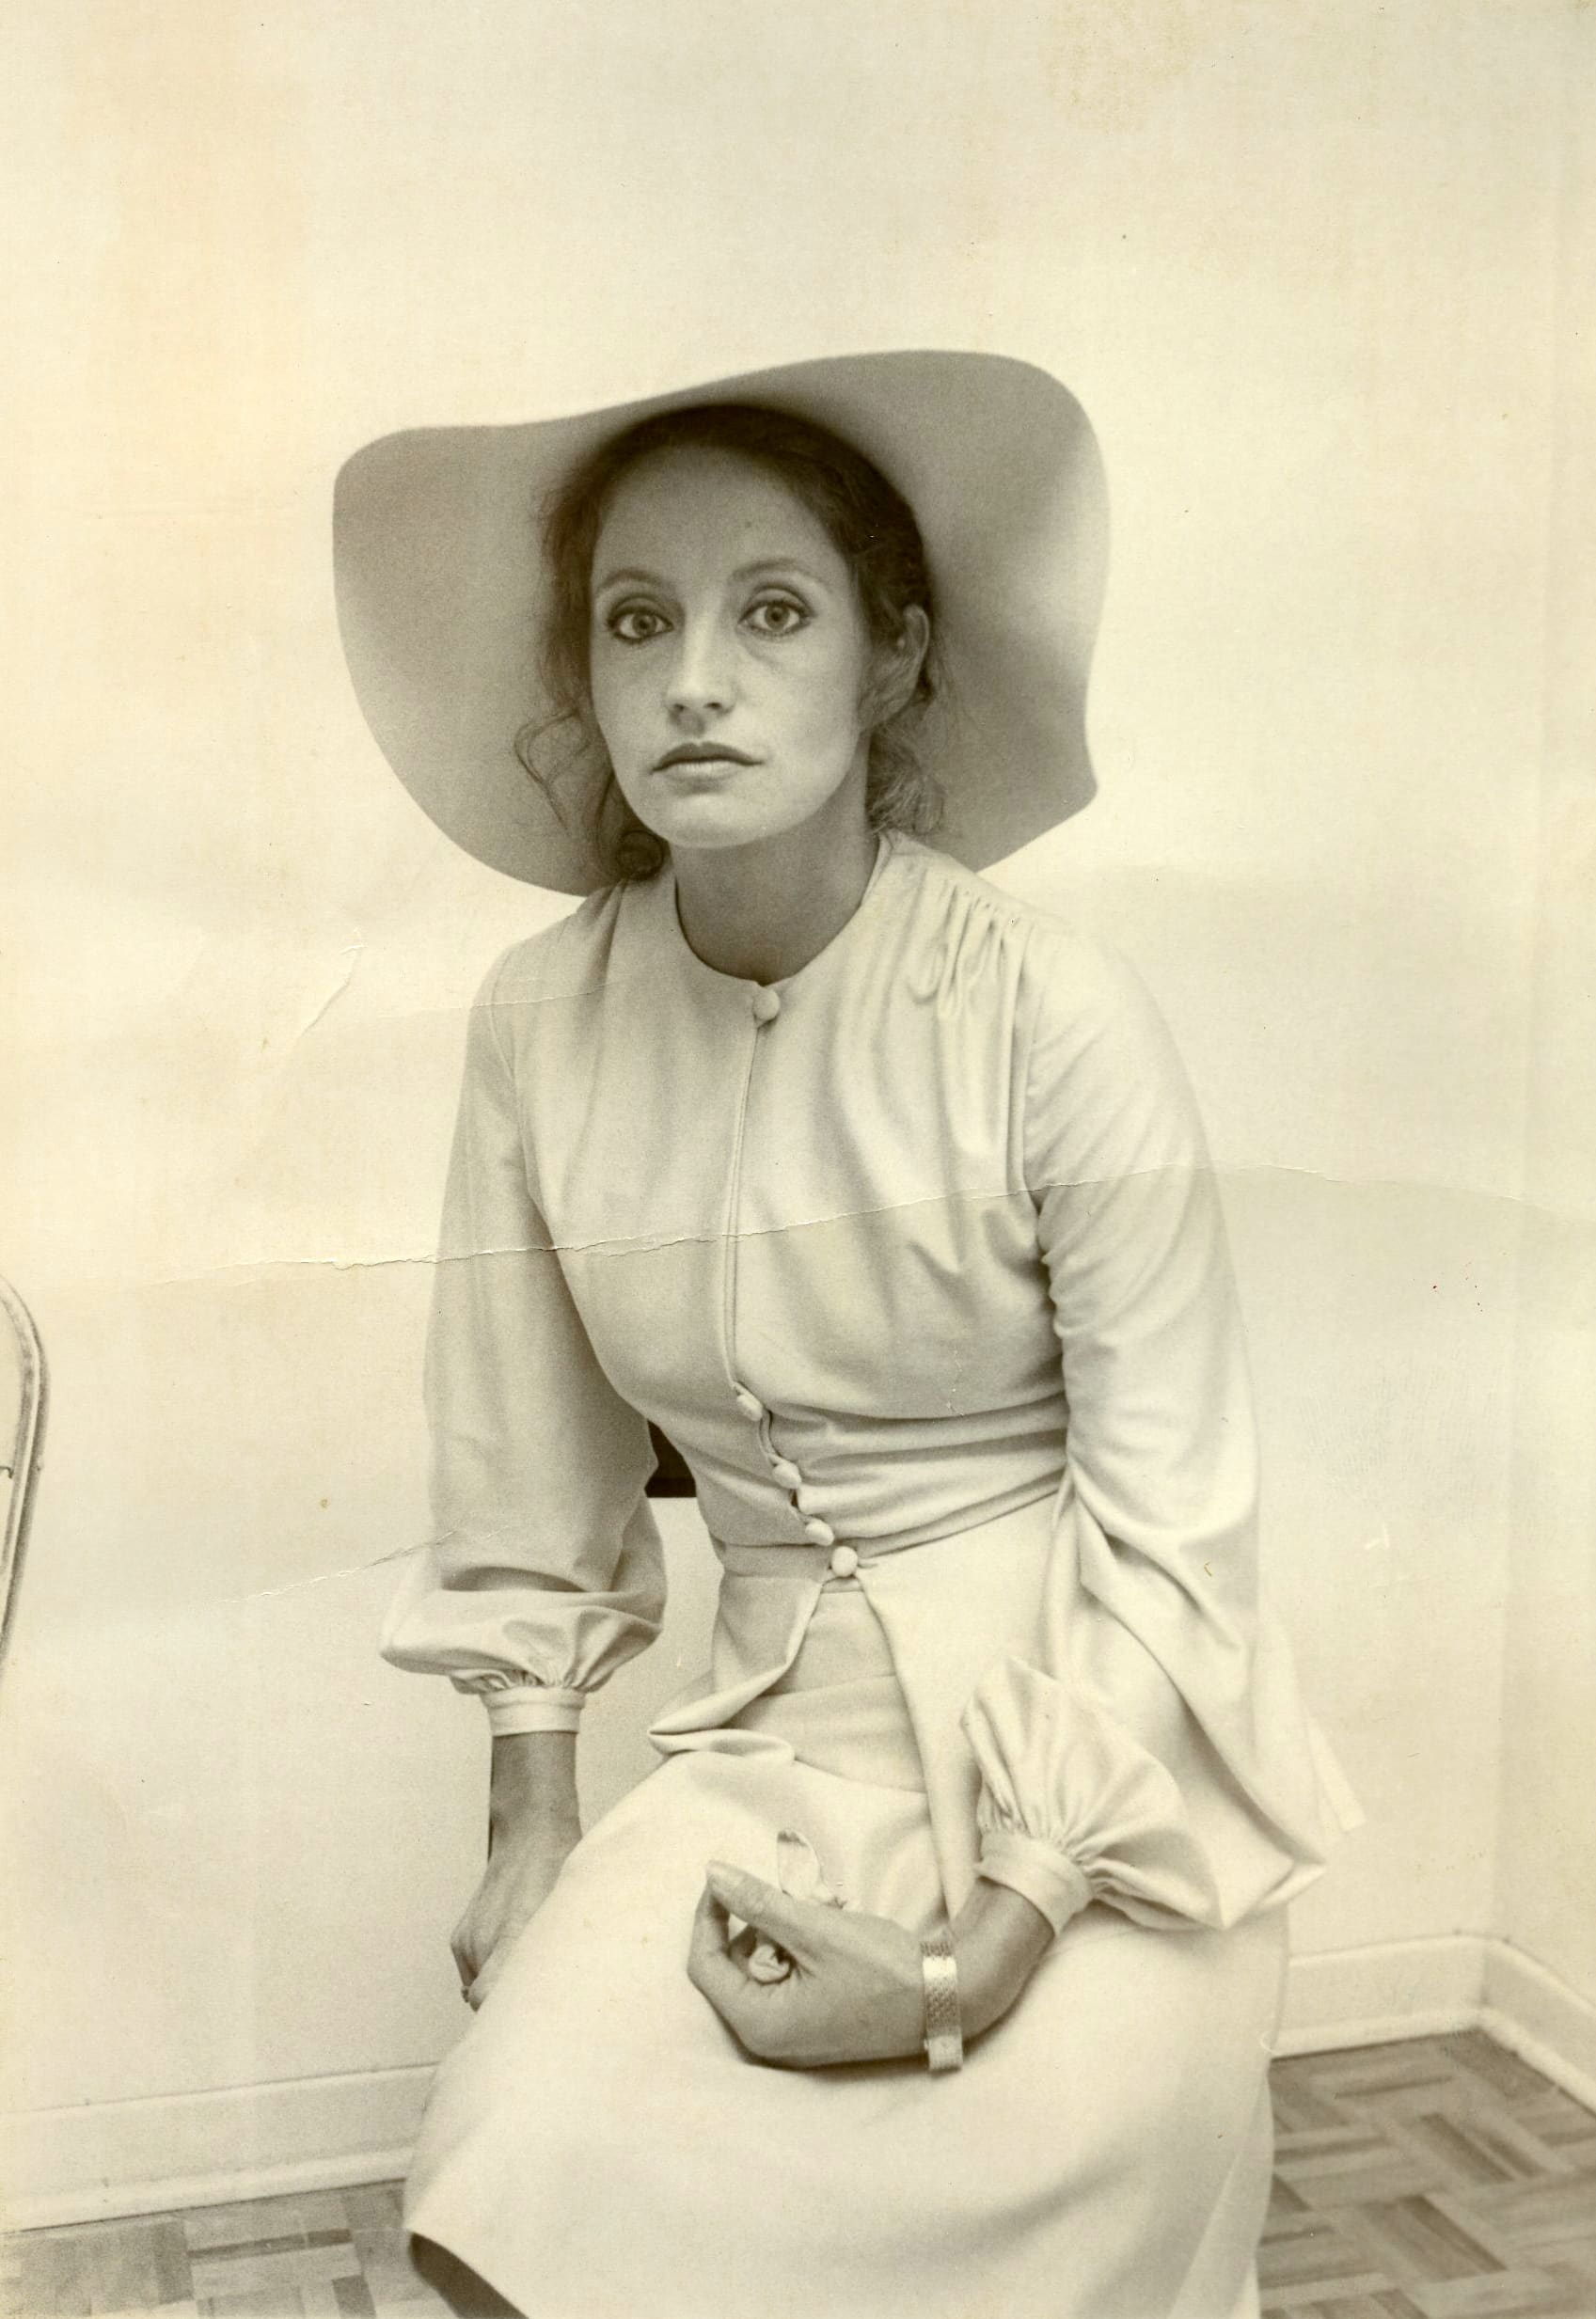 Discussion on this topic: Elizabeth Harrower (actress), chanidapa-pongsilpipat/